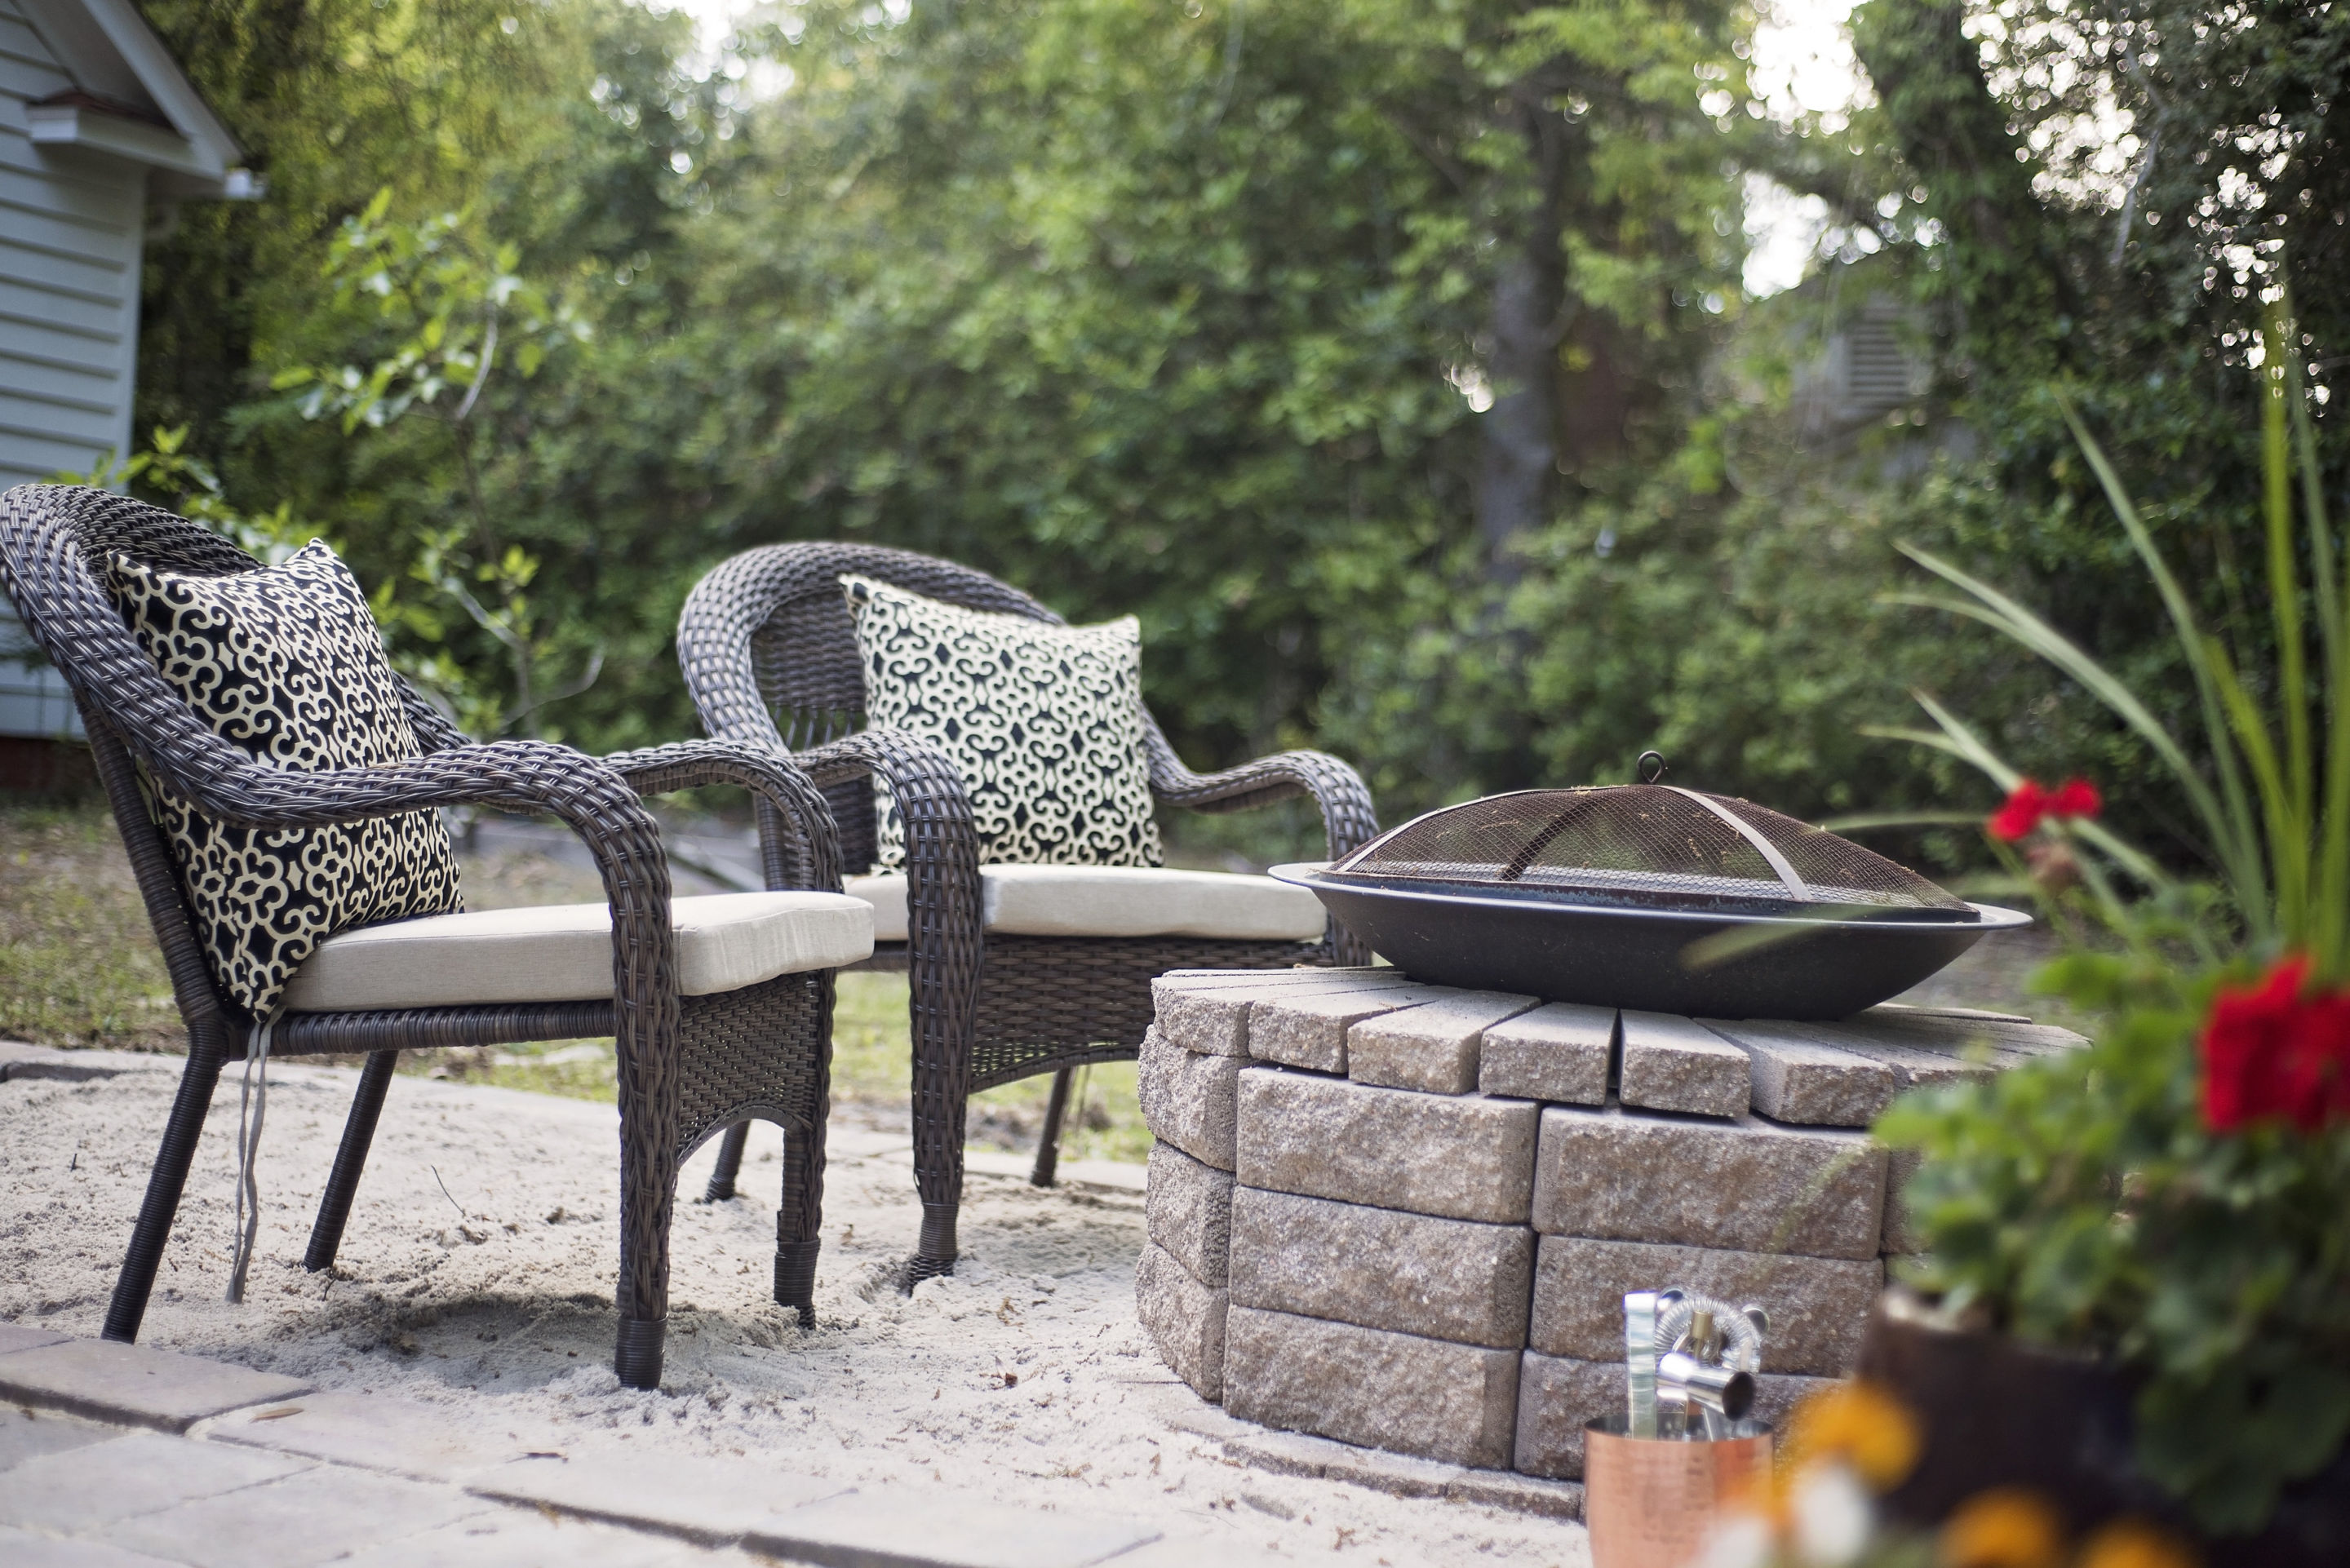 Attirant Southern Inspired, Spring Patio Fun With Home Depot